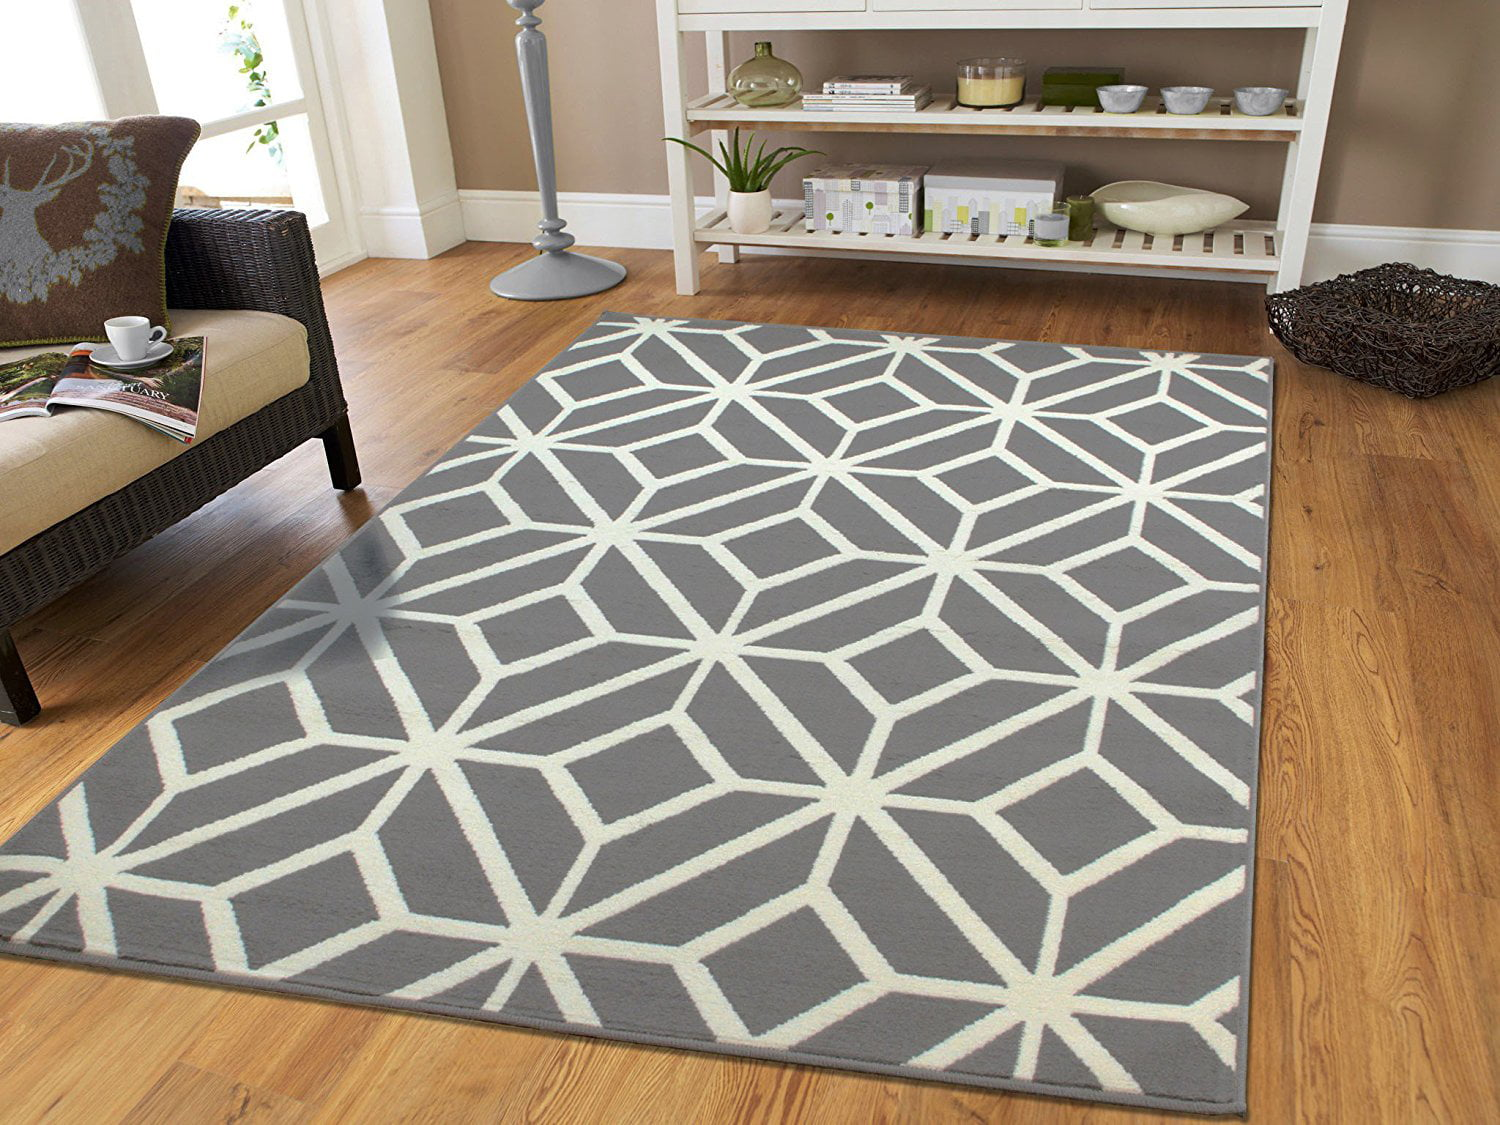 Prime Large Gray Moroccan Trellis 8X11 Area Rugs For Living Room Grey Dining Room Rug For Under The Table Download Free Architecture Designs Grimeyleaguecom